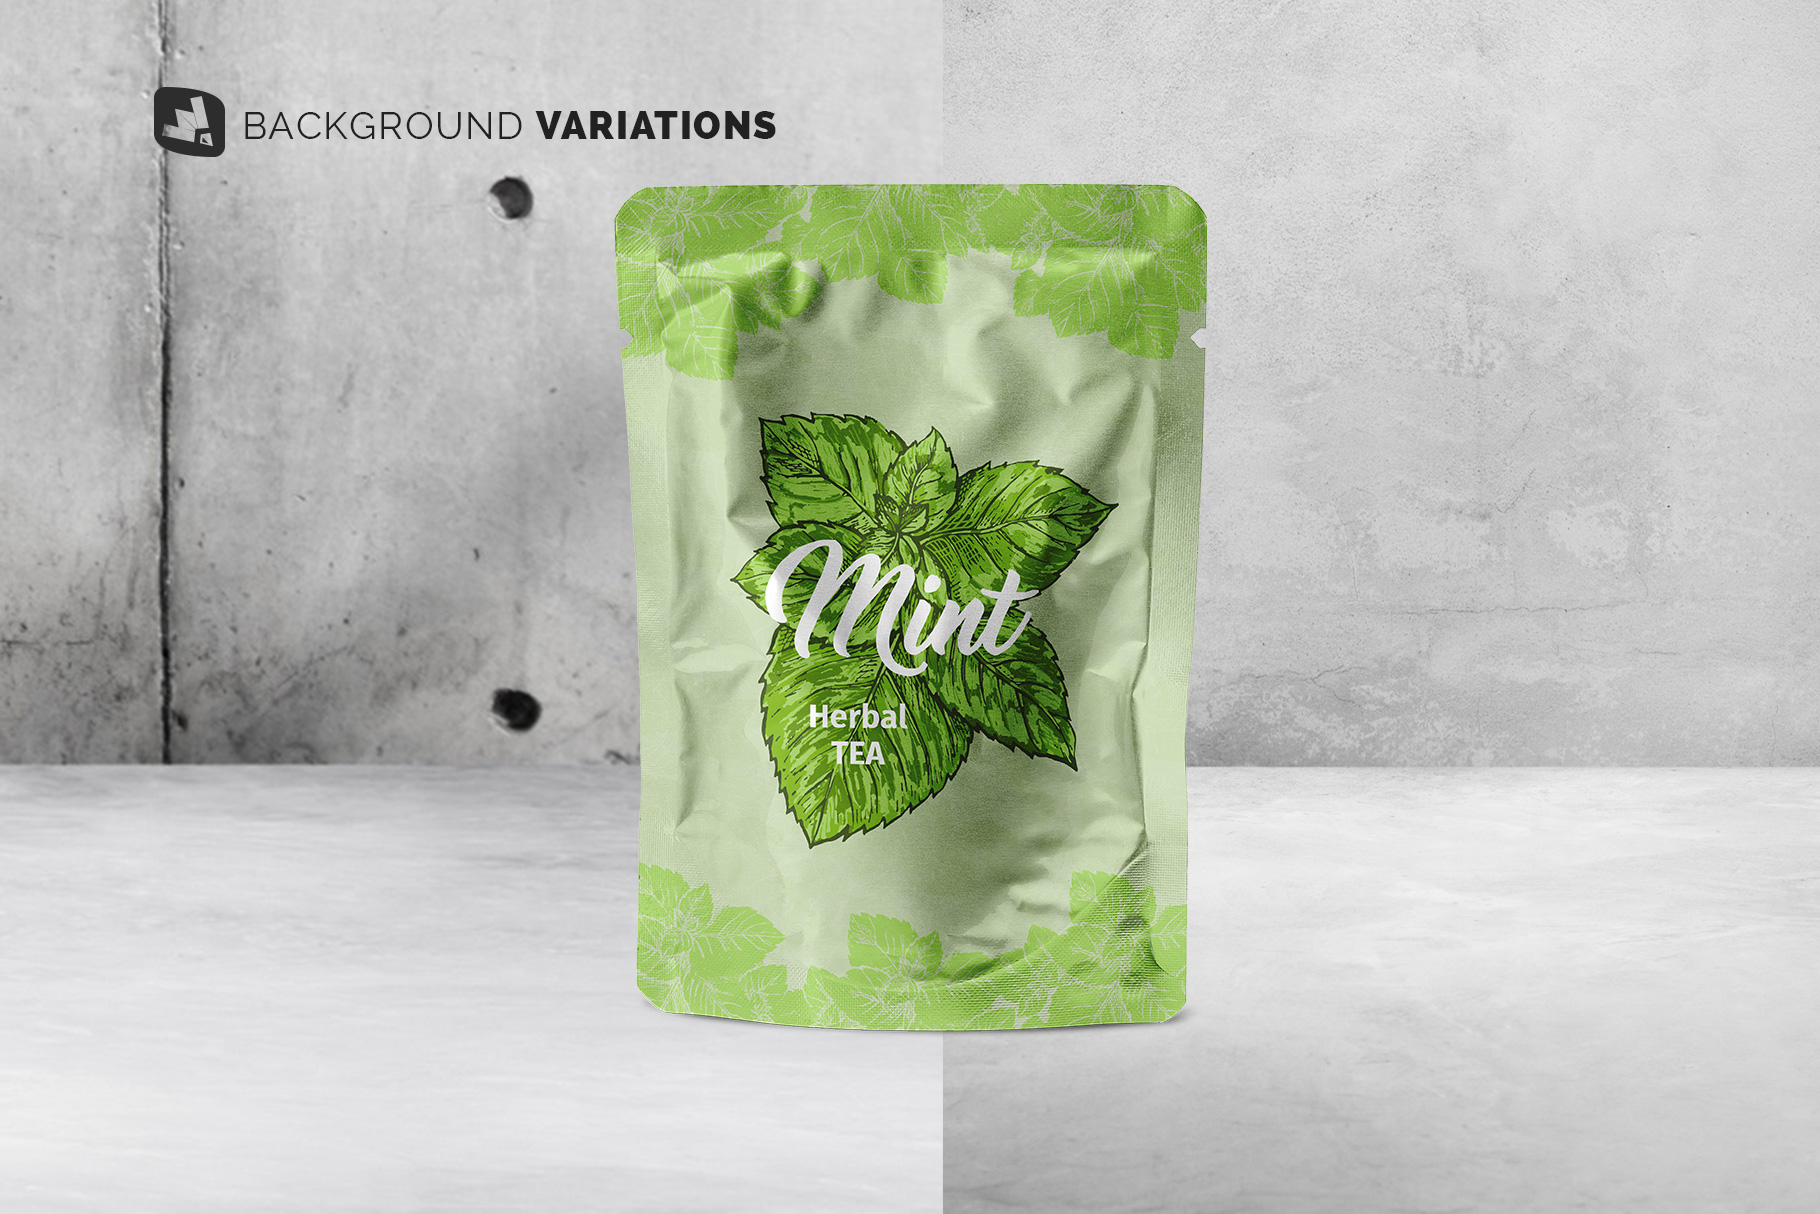 background options of the flexible foil pouch packaging mockup